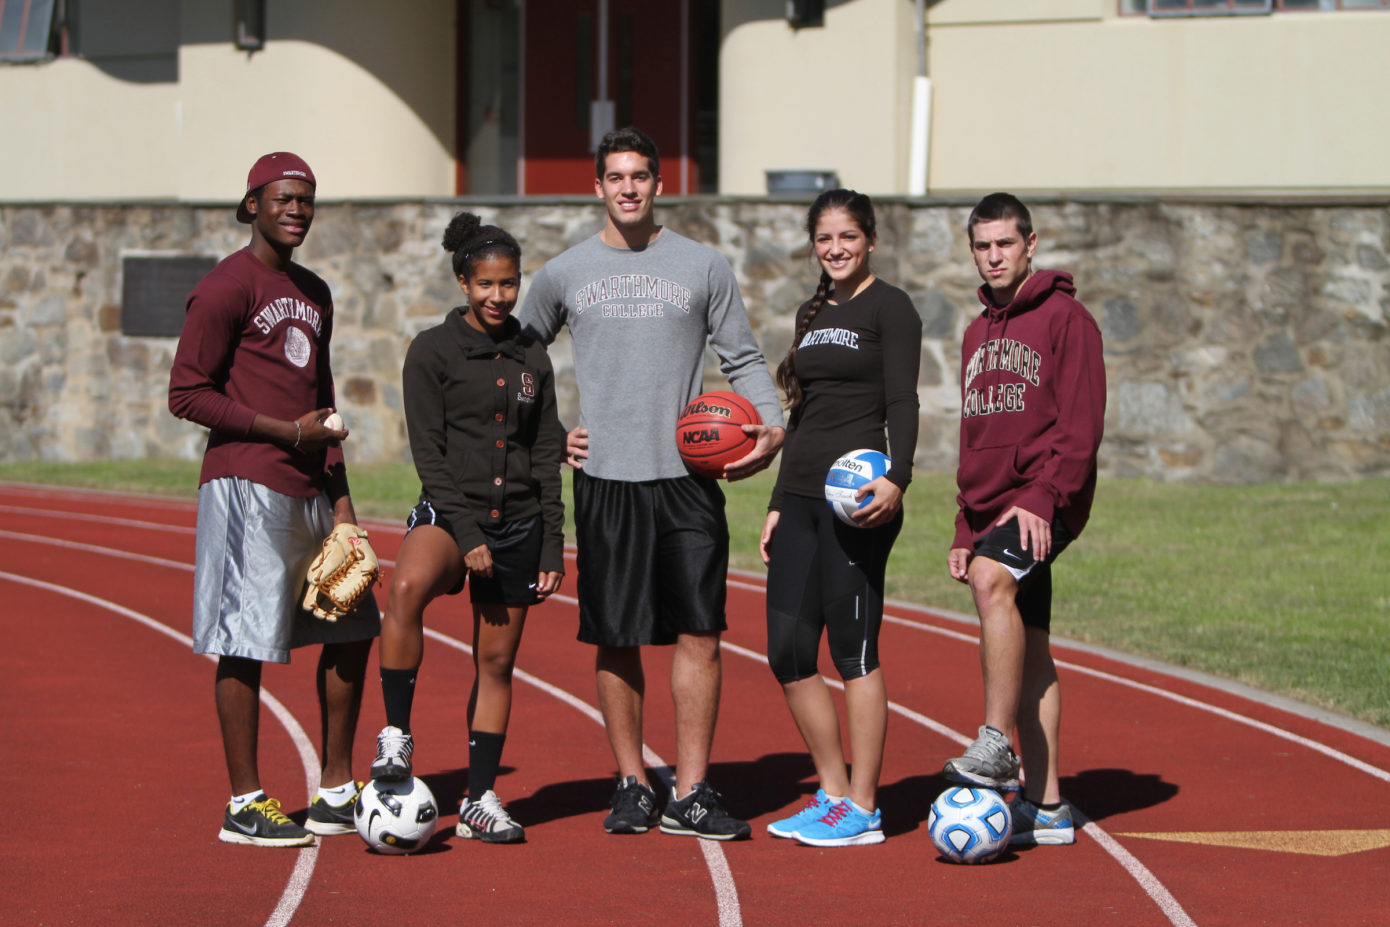 Swarthmore College student athletes standing on a track wearing college apparel and holding various balls and sporting equipment